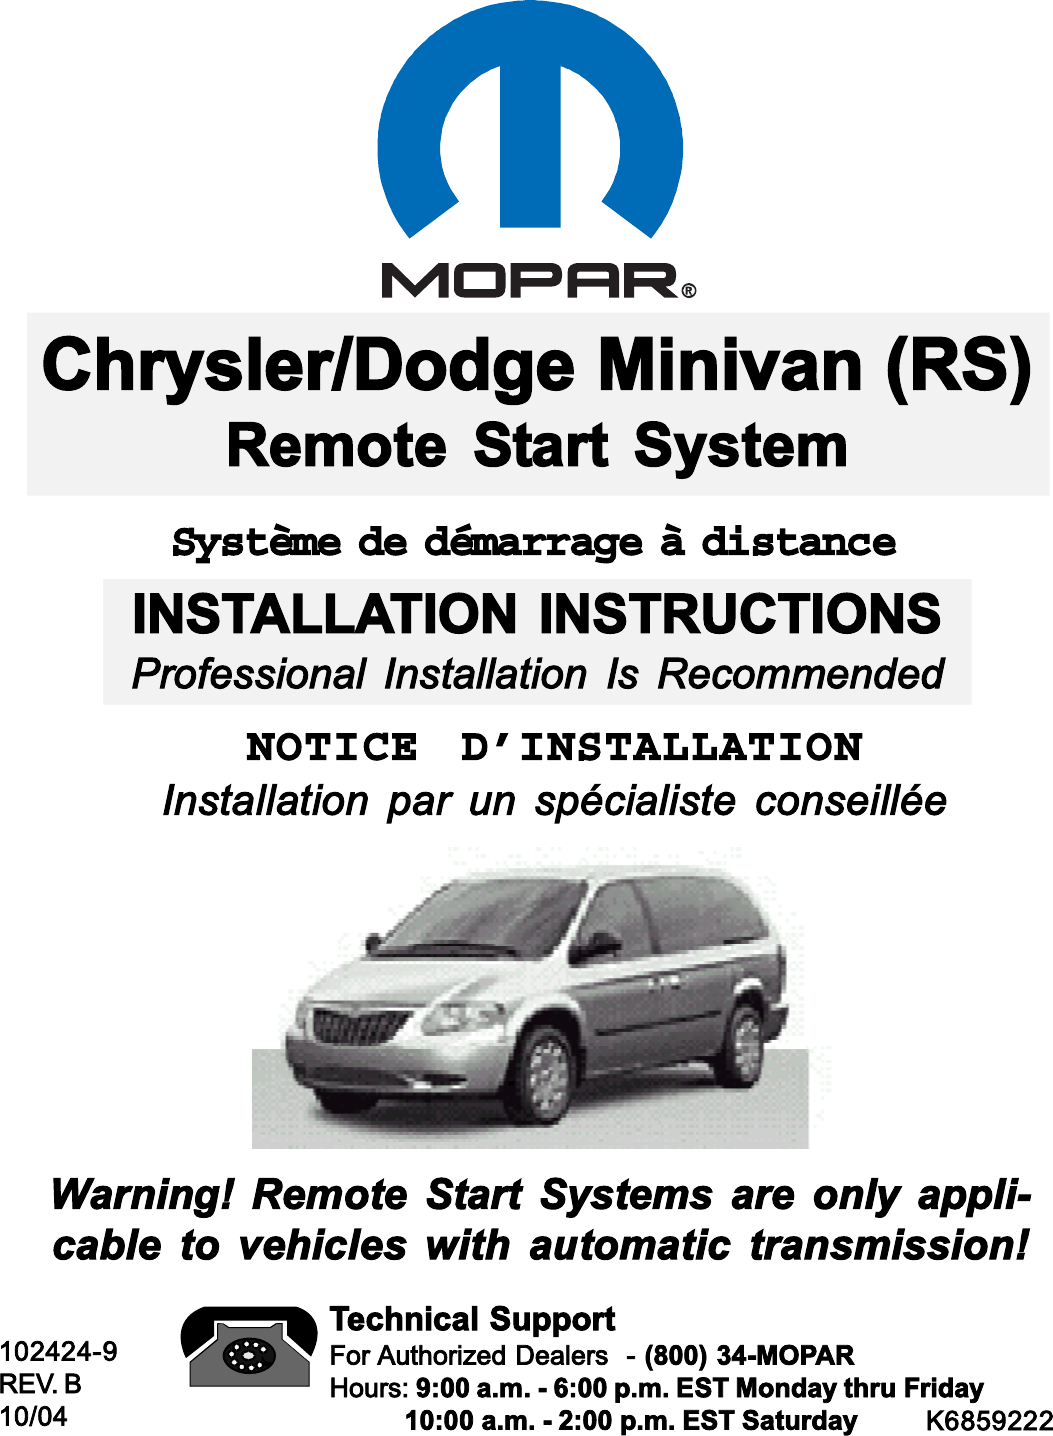 Dodge neon car ebooks user manuals guide user manuals array chrysler sebring ebooks user manuals guide user manuals rh chrysler sebring ebooks user manuals fandeluxe Choice Image